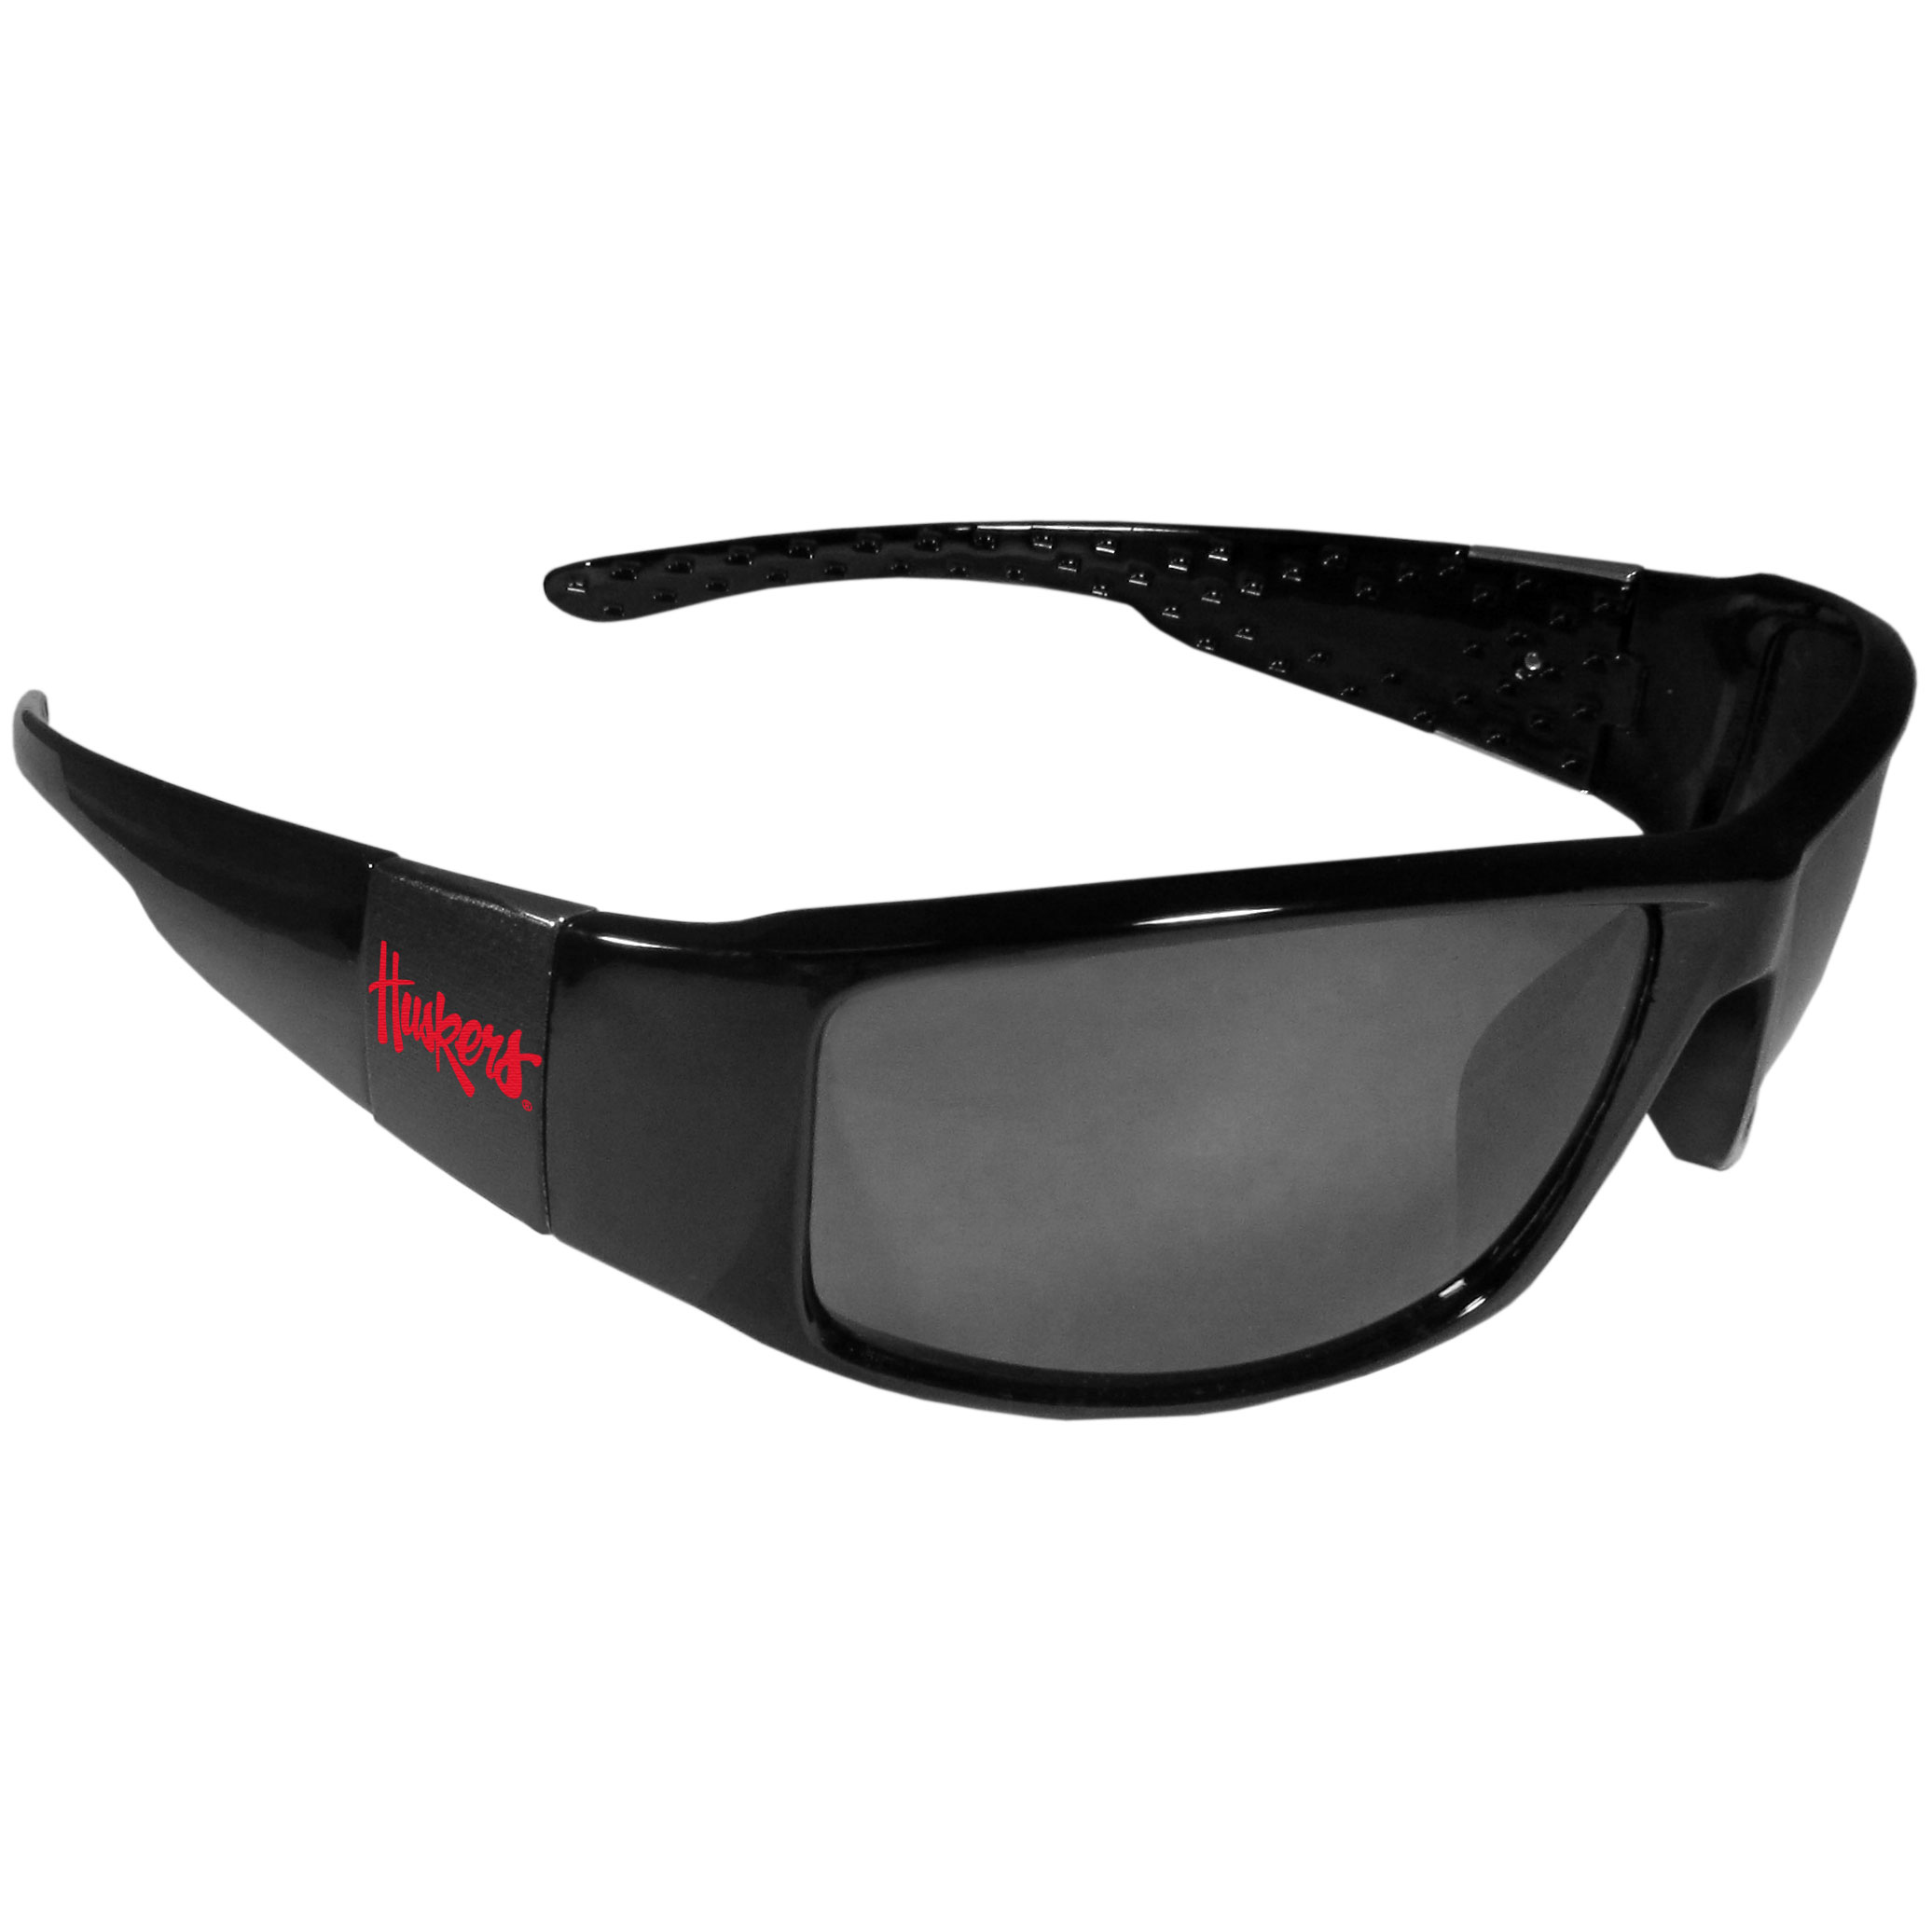 Nebraska Cornhuskers Black Wrap Sunglasses - These designer inspired frames have a sleek look in all black with  Nebraska Cornhuskers shields on each arm with a printed logo. The shades are perfect for any outdoor activity like; golfing, driving, hiking, fishing or cheering on the team at a tailgating event or at a home game day BBQ with a lens rating of 100% UVA/UVB for maximum UV protection. The high-quality frames are as durable as they are fashionable and with their classic look they are the perfect fan accessory that can be worn everyday for every occasion.